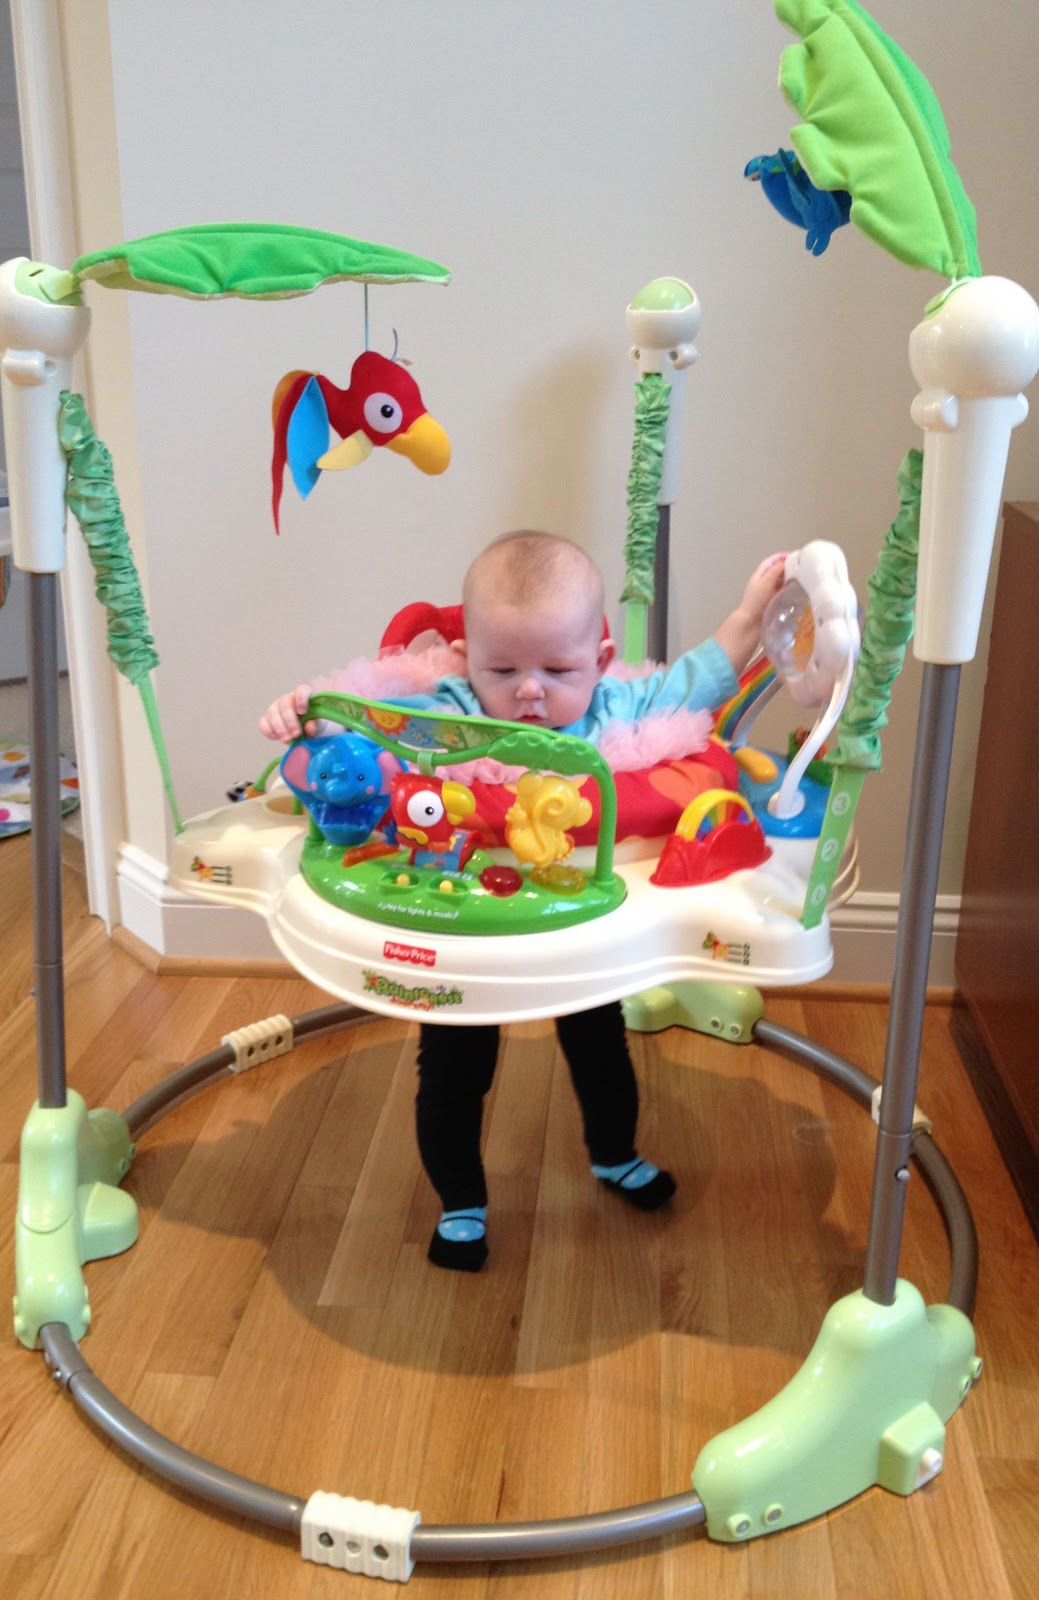 062942d89ec1 2 Jumpers  Fisher-Price Rainforest Jumperoo and the Graco Jump N ...